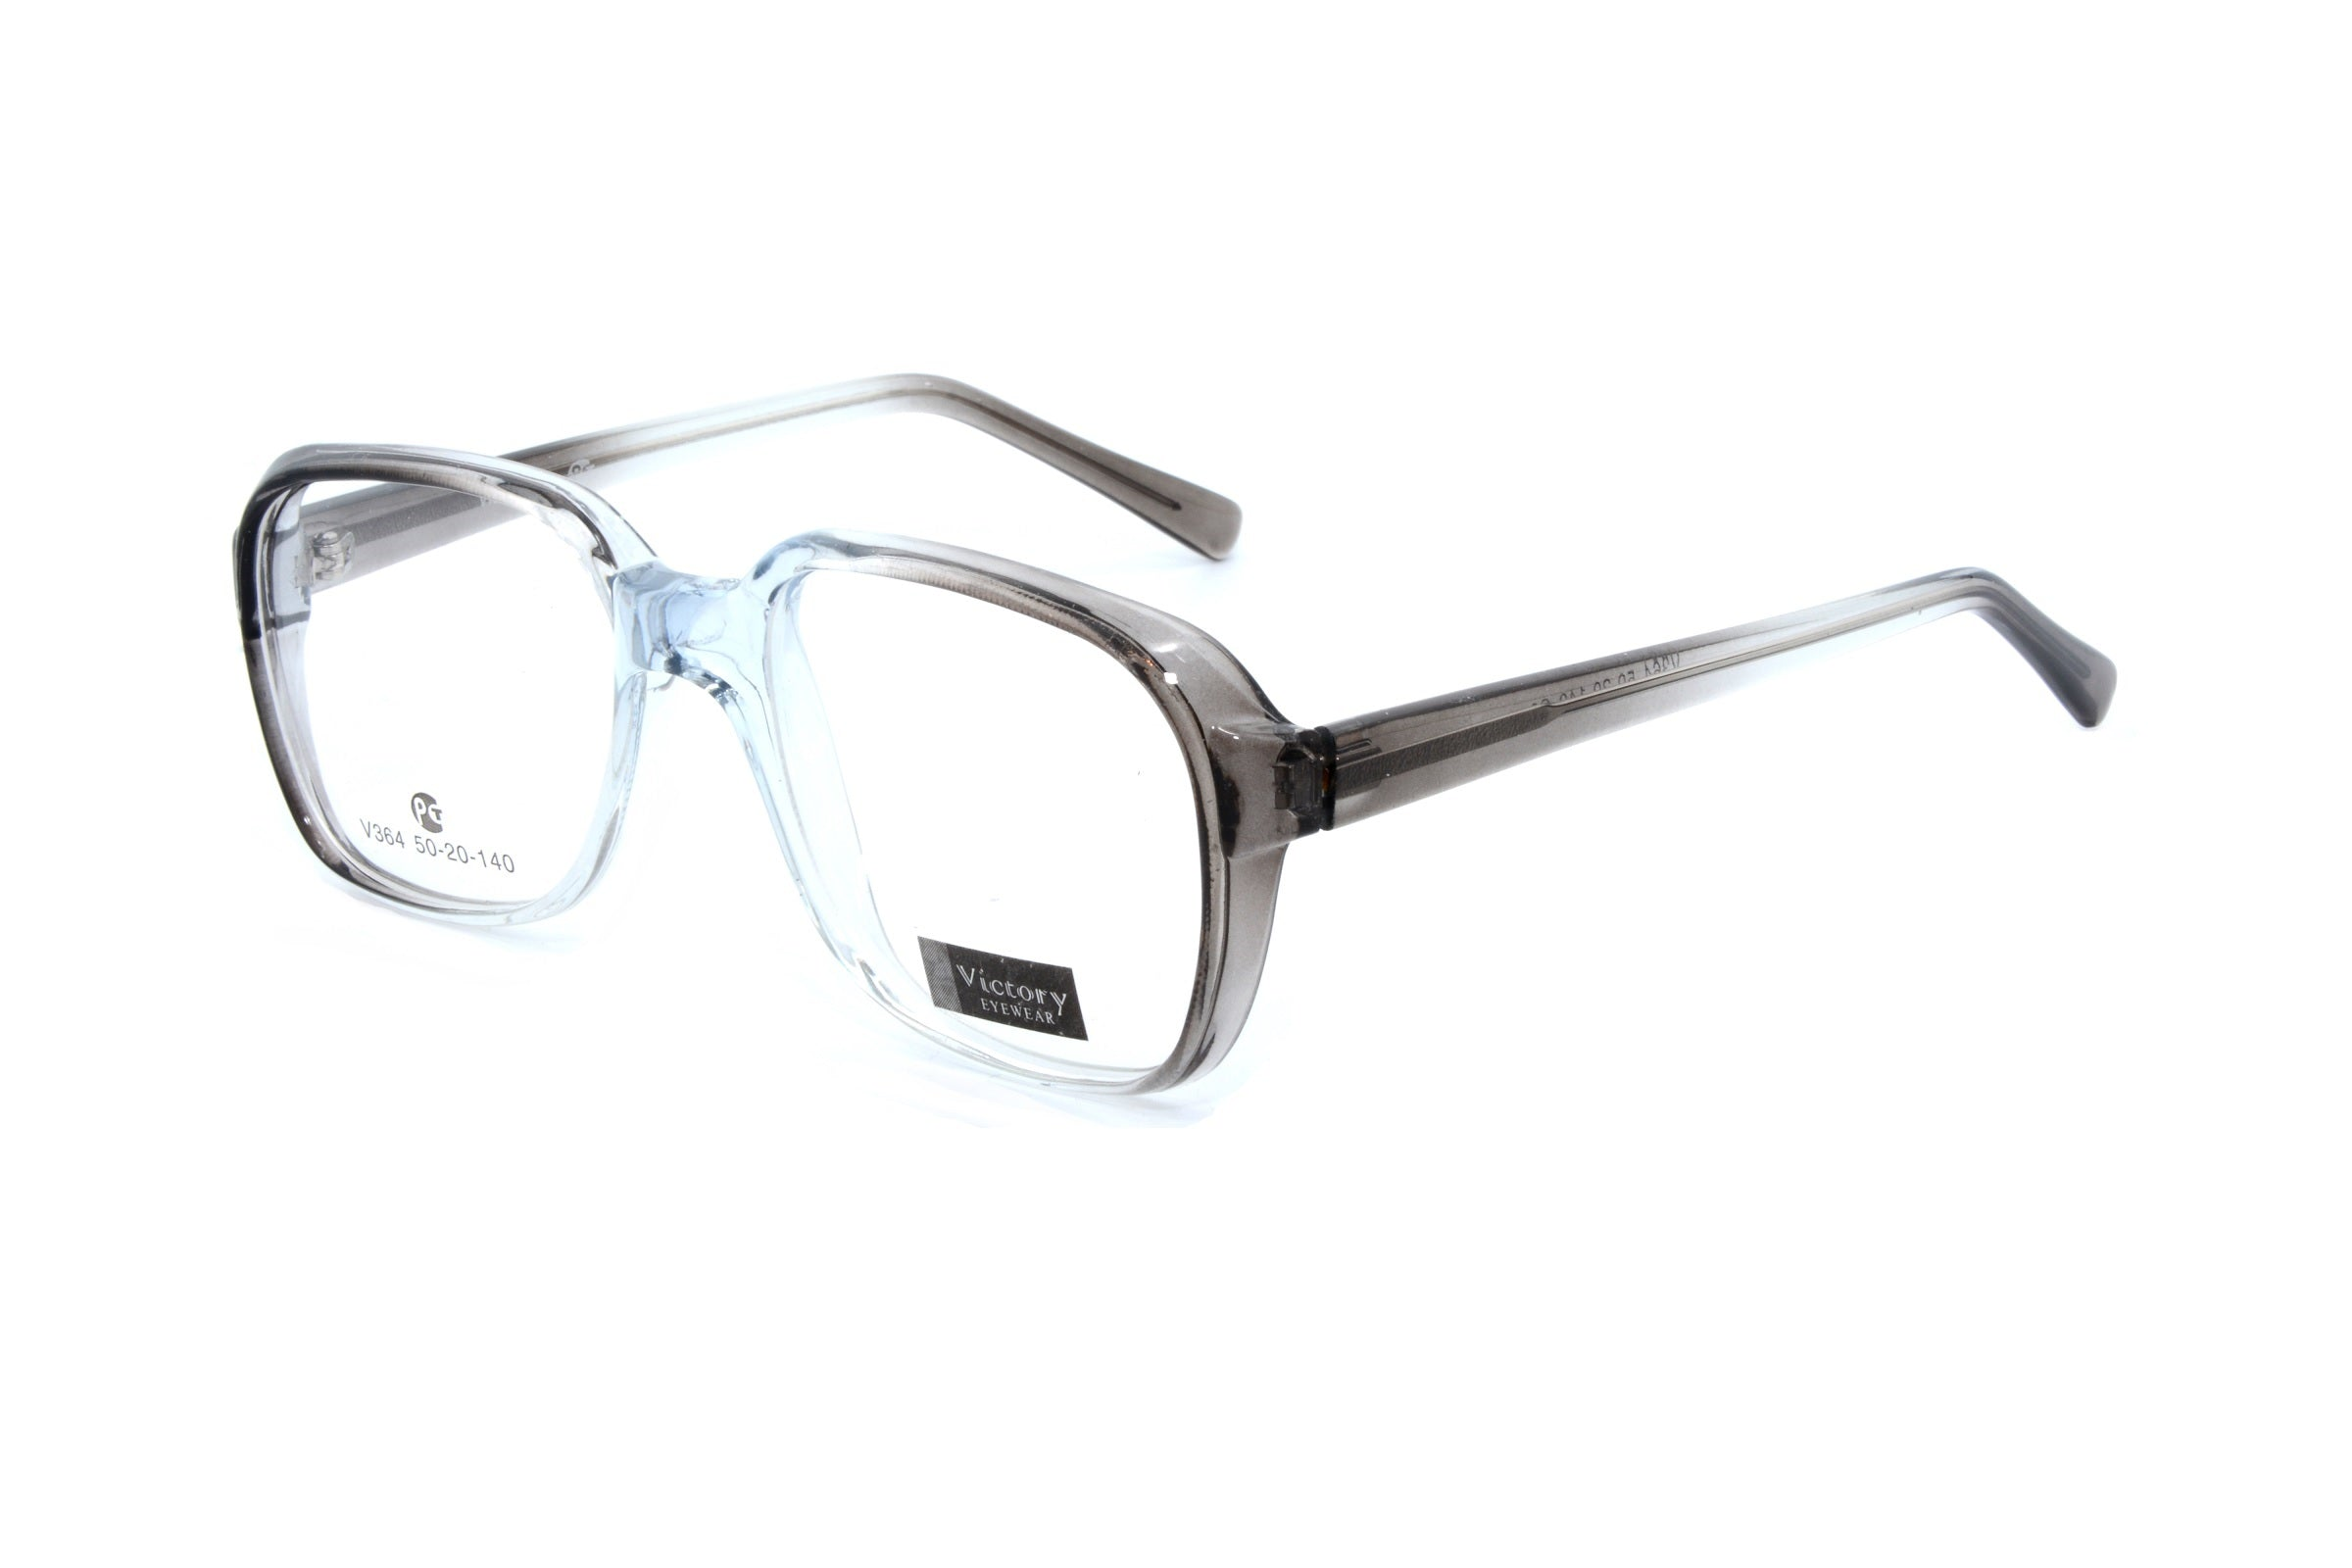 Victory eyewear 364, C3 - Optics Trading